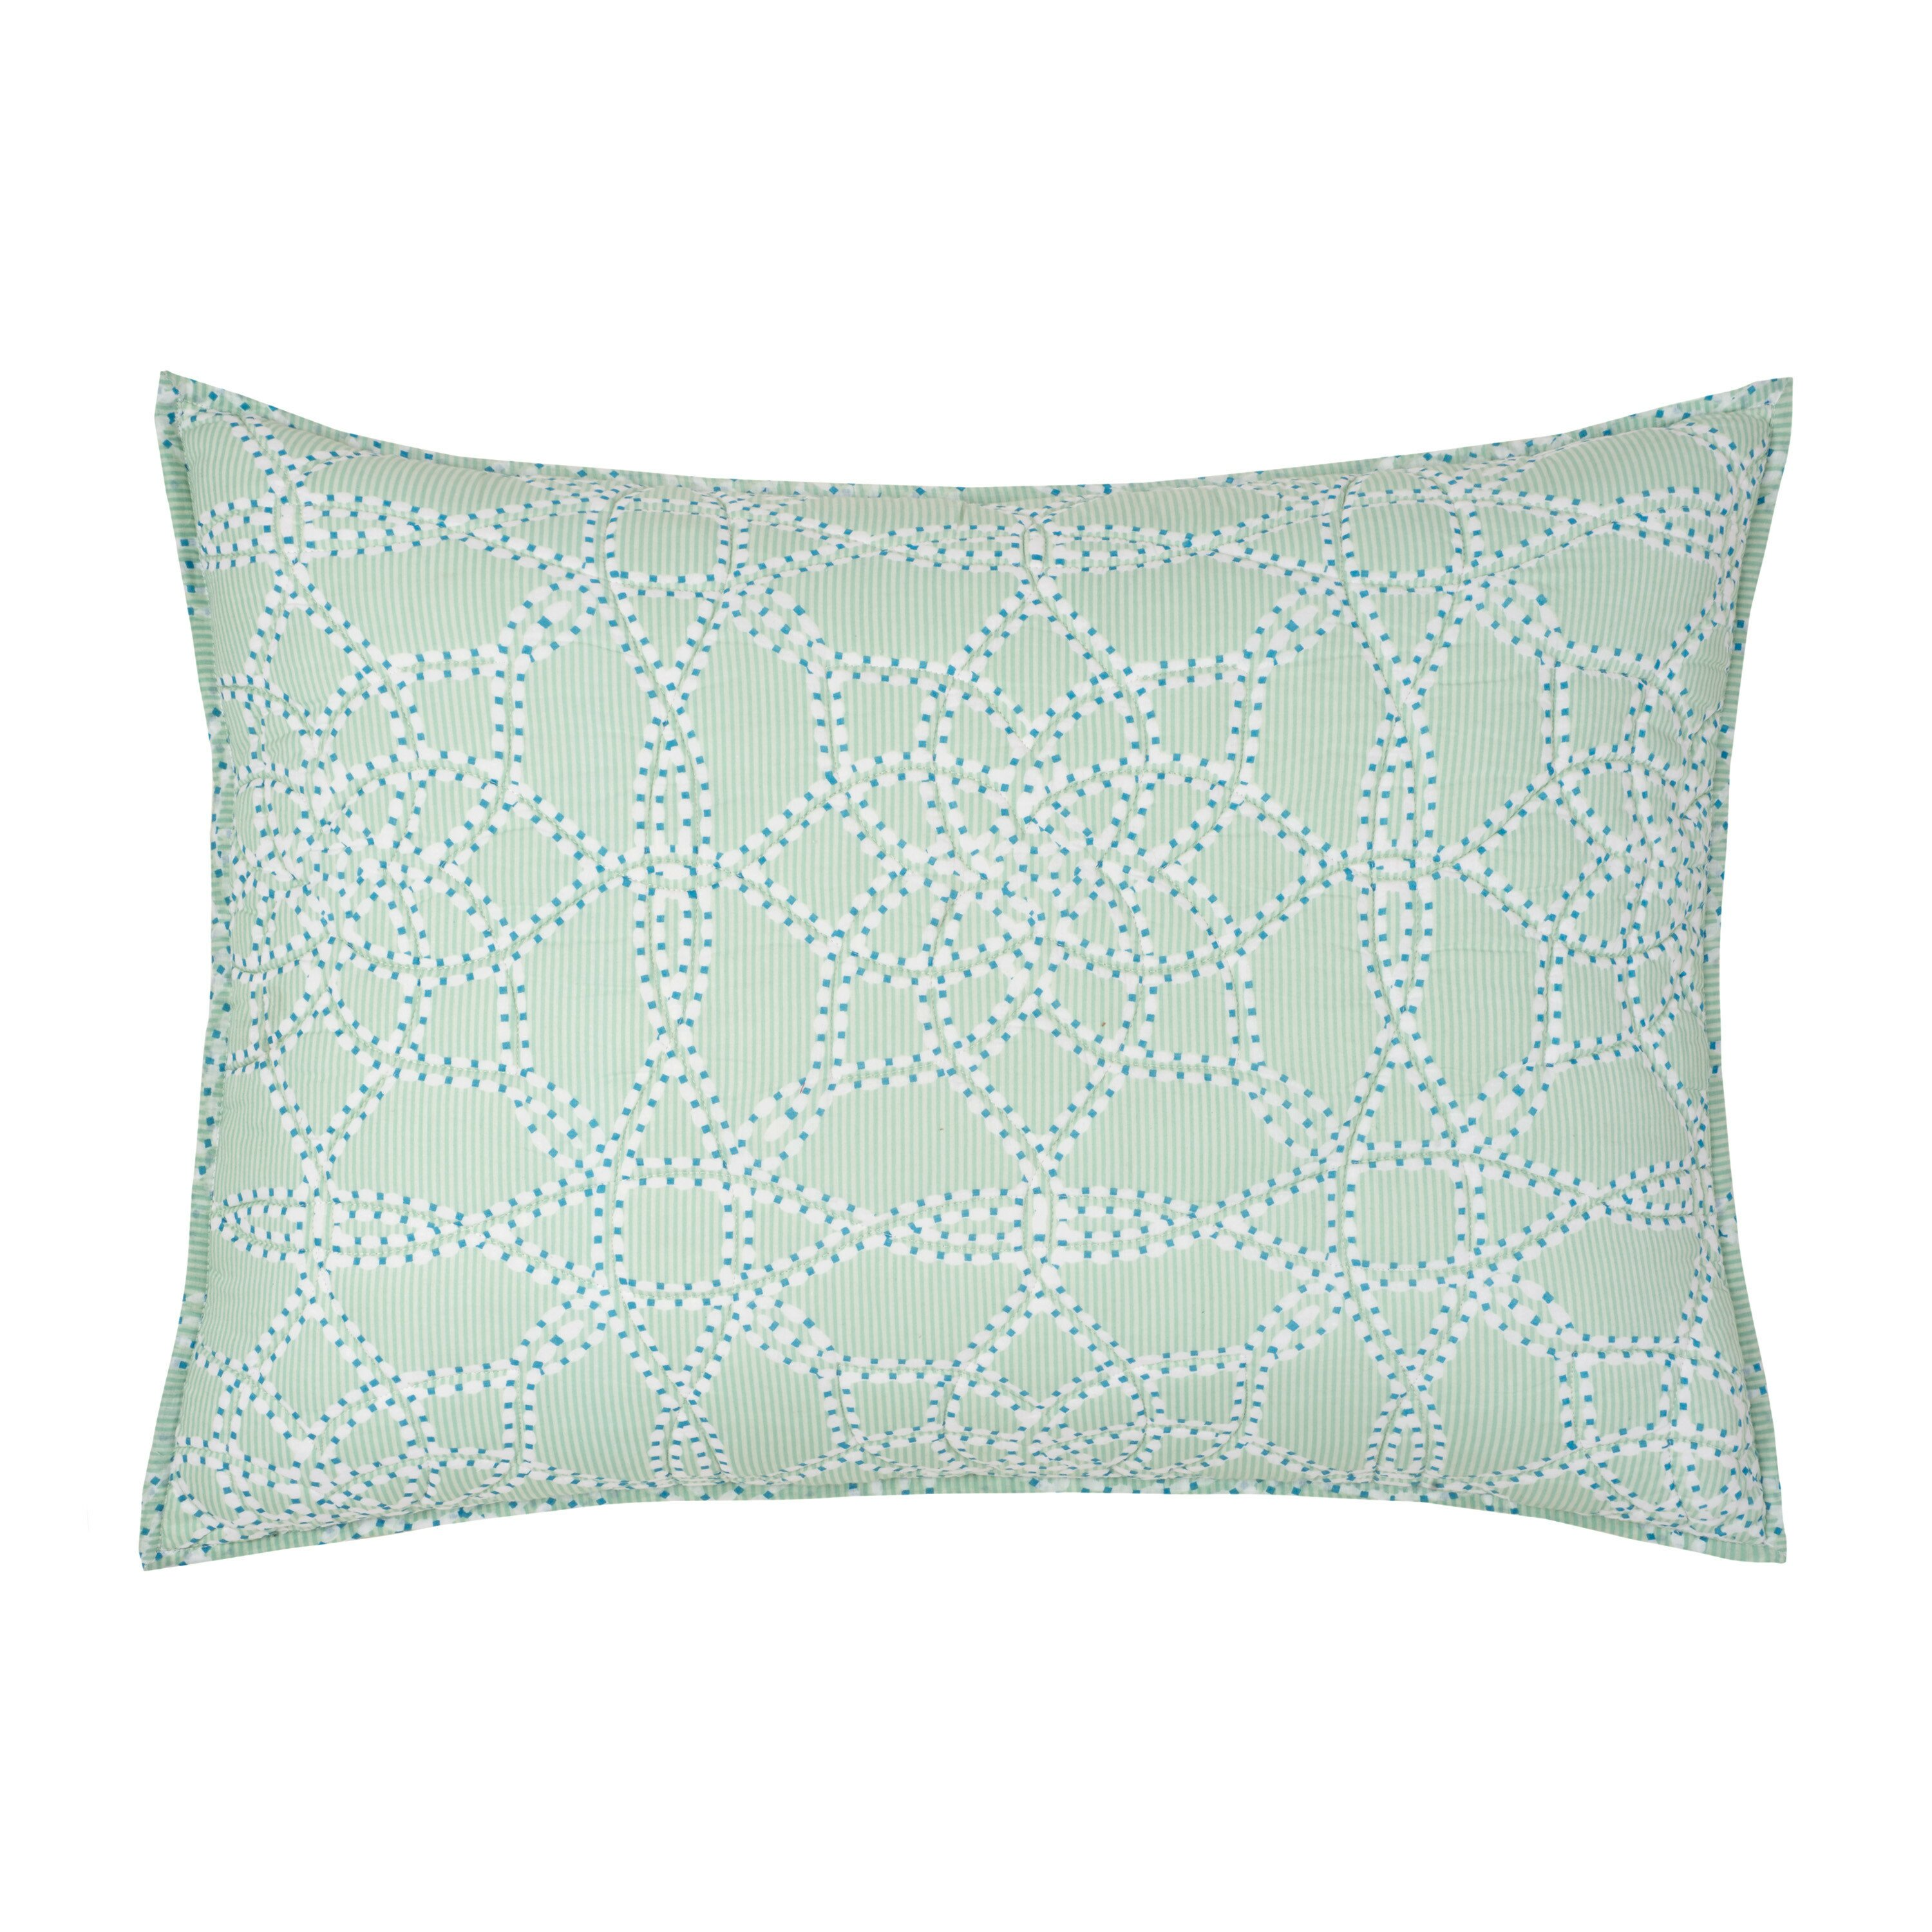 Southern tide lagoon sham reviews for Southern tide bedding